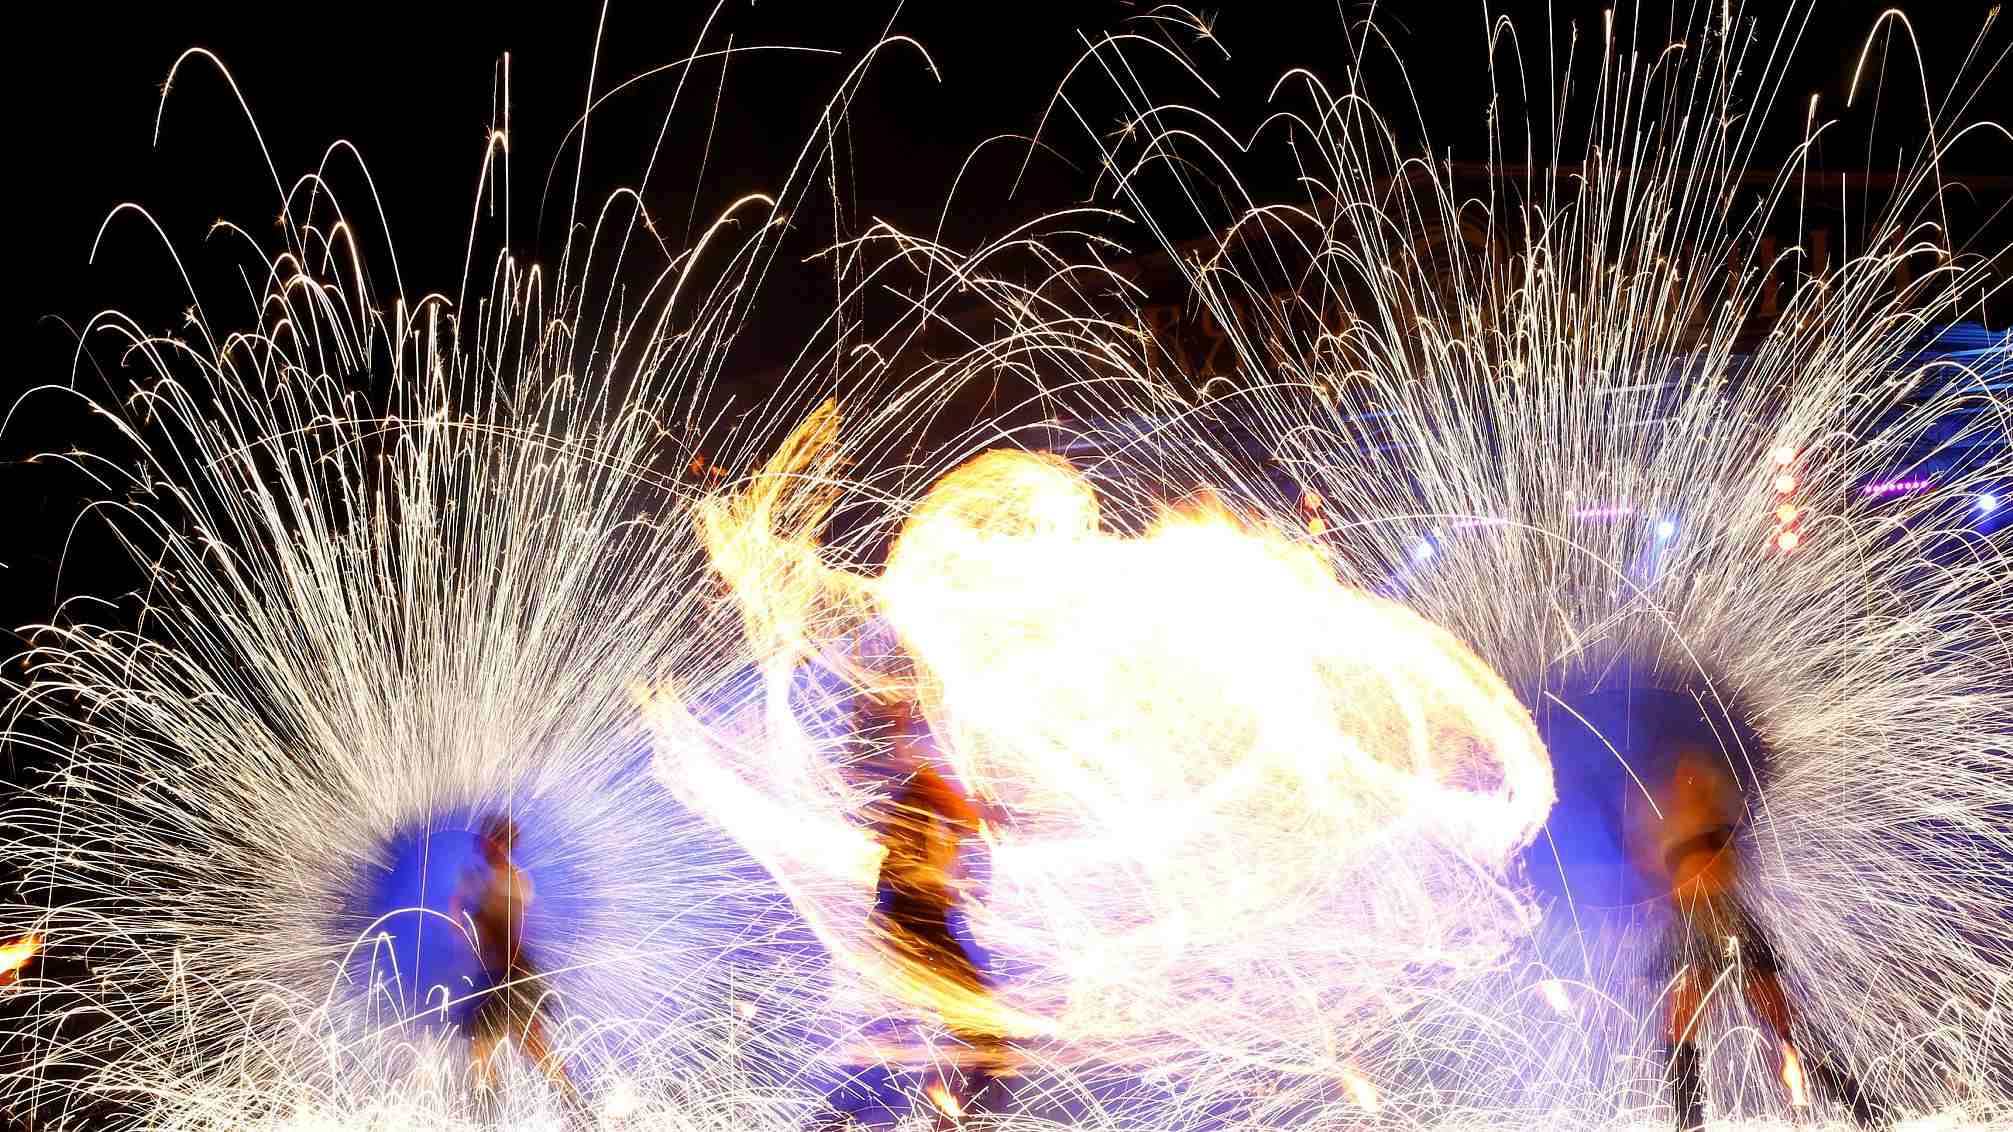 Belarusian fire festival wows audiences from the world